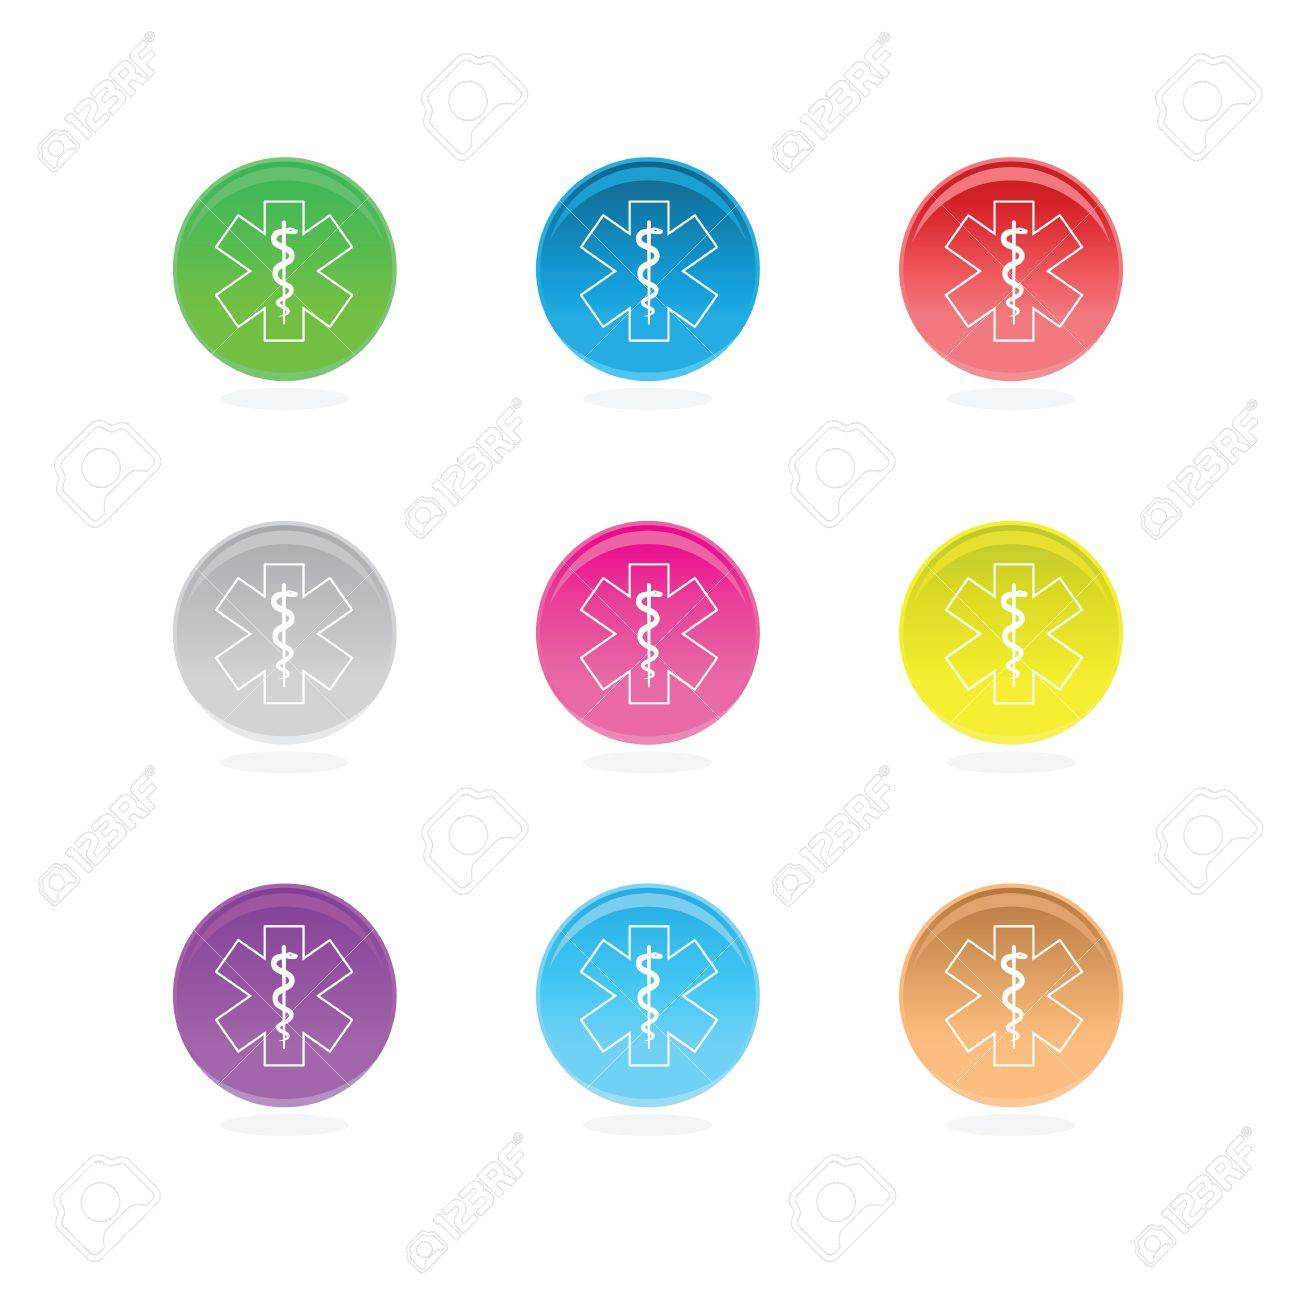 Medical star symbols in color circles isolated on white Stock Vector - 14580534